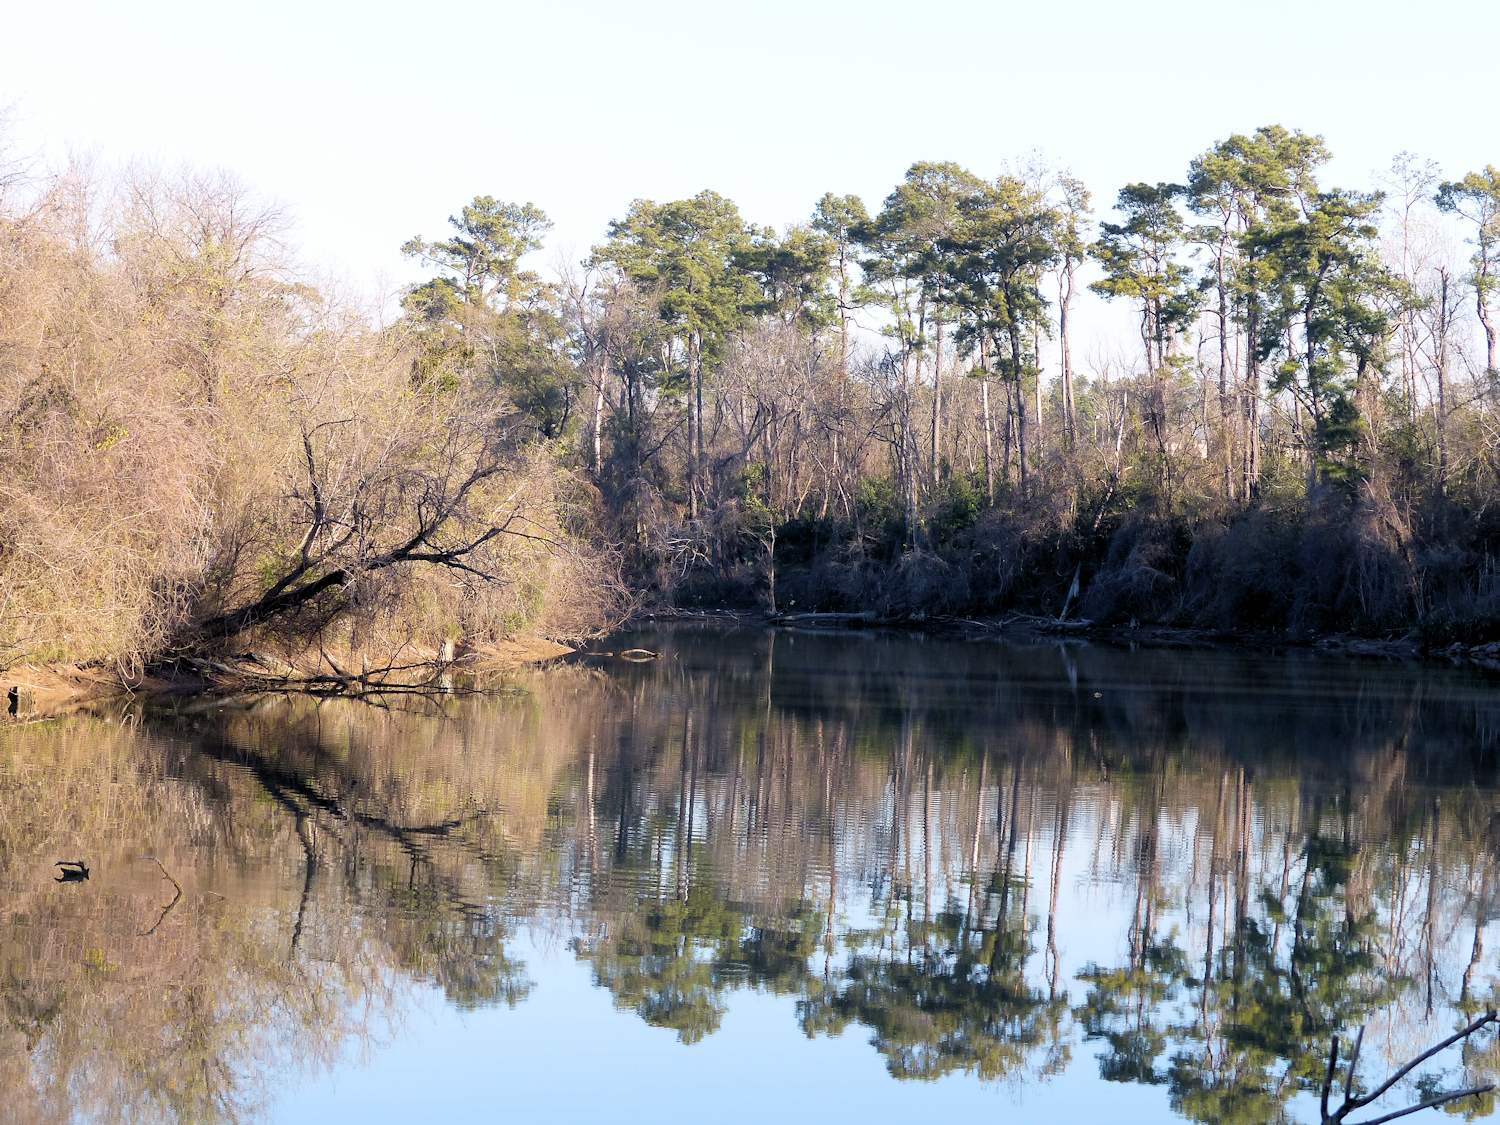 Reflections in the Undisclosed Bayou